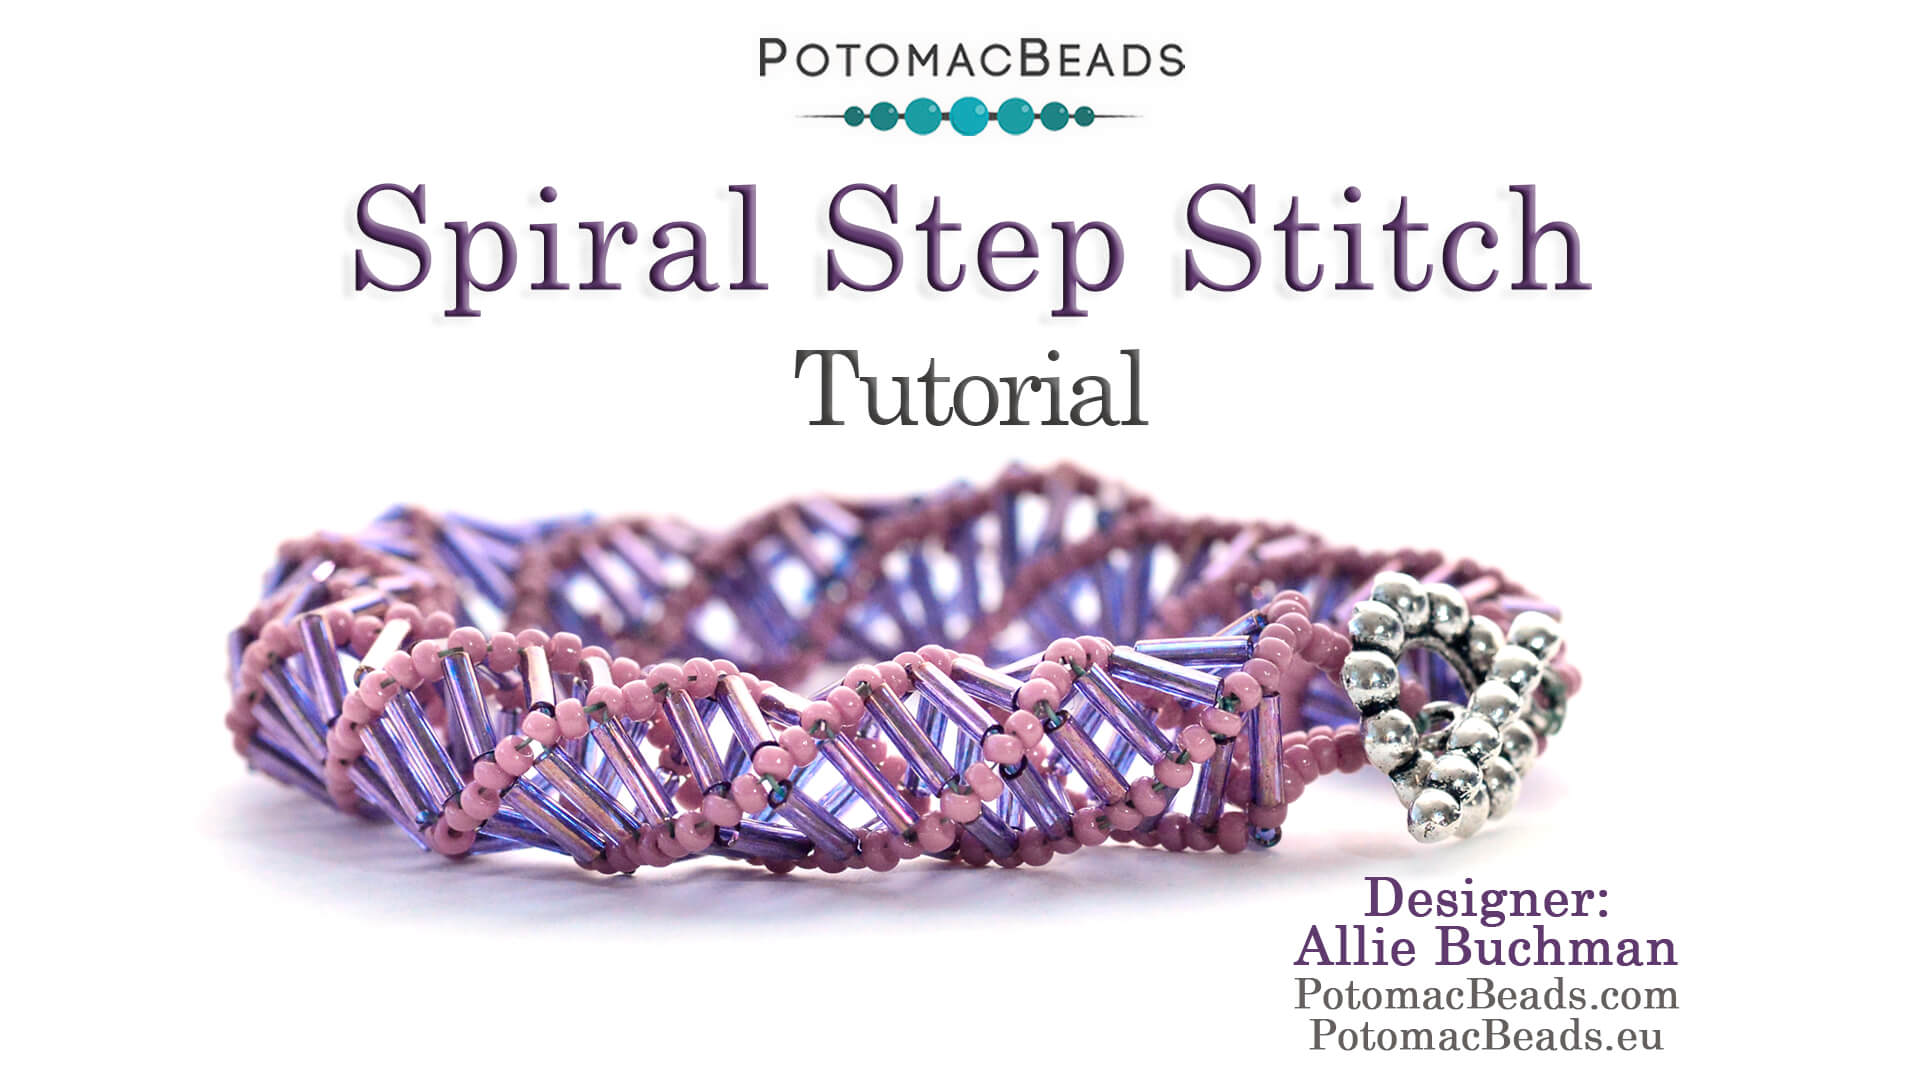 How to Bead / Videos Sorted by Beads / Seed Bead Only Videos / Spiral Step Jewelry Tutorial